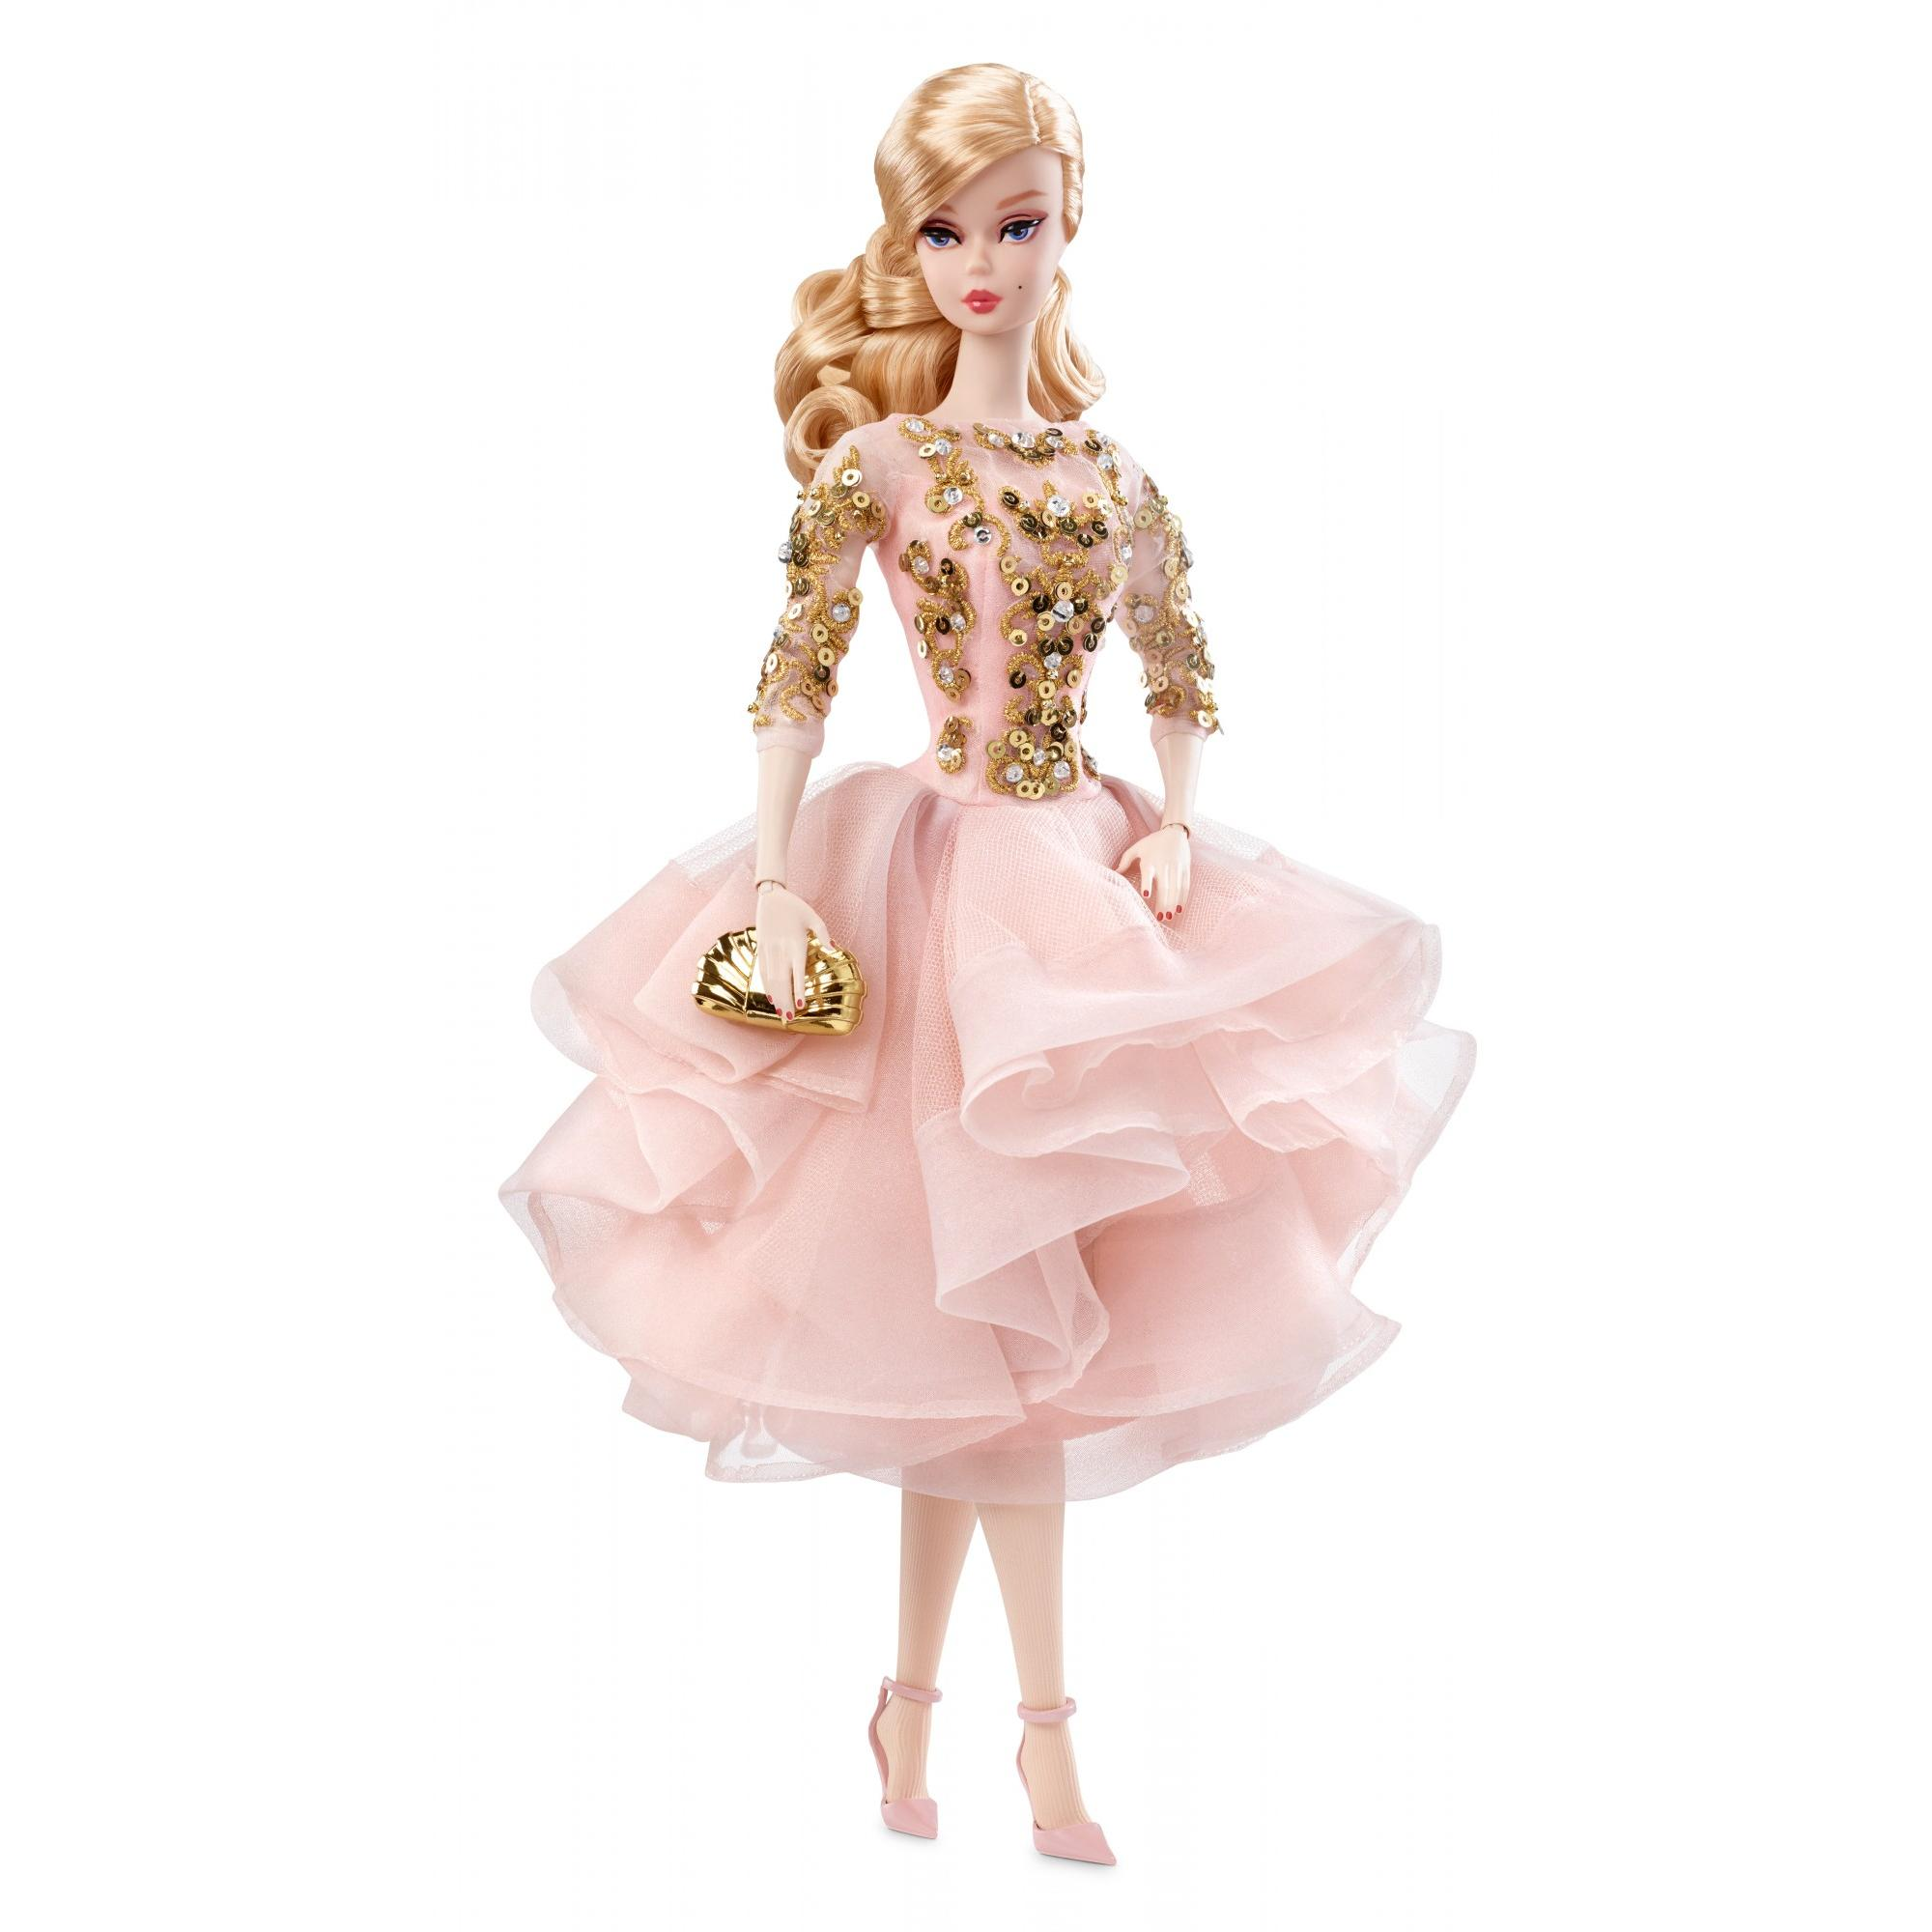 Barbie Collector Barbie Fashion Model Collection Doll Blush & Gold Cocktail Dress by Mattel